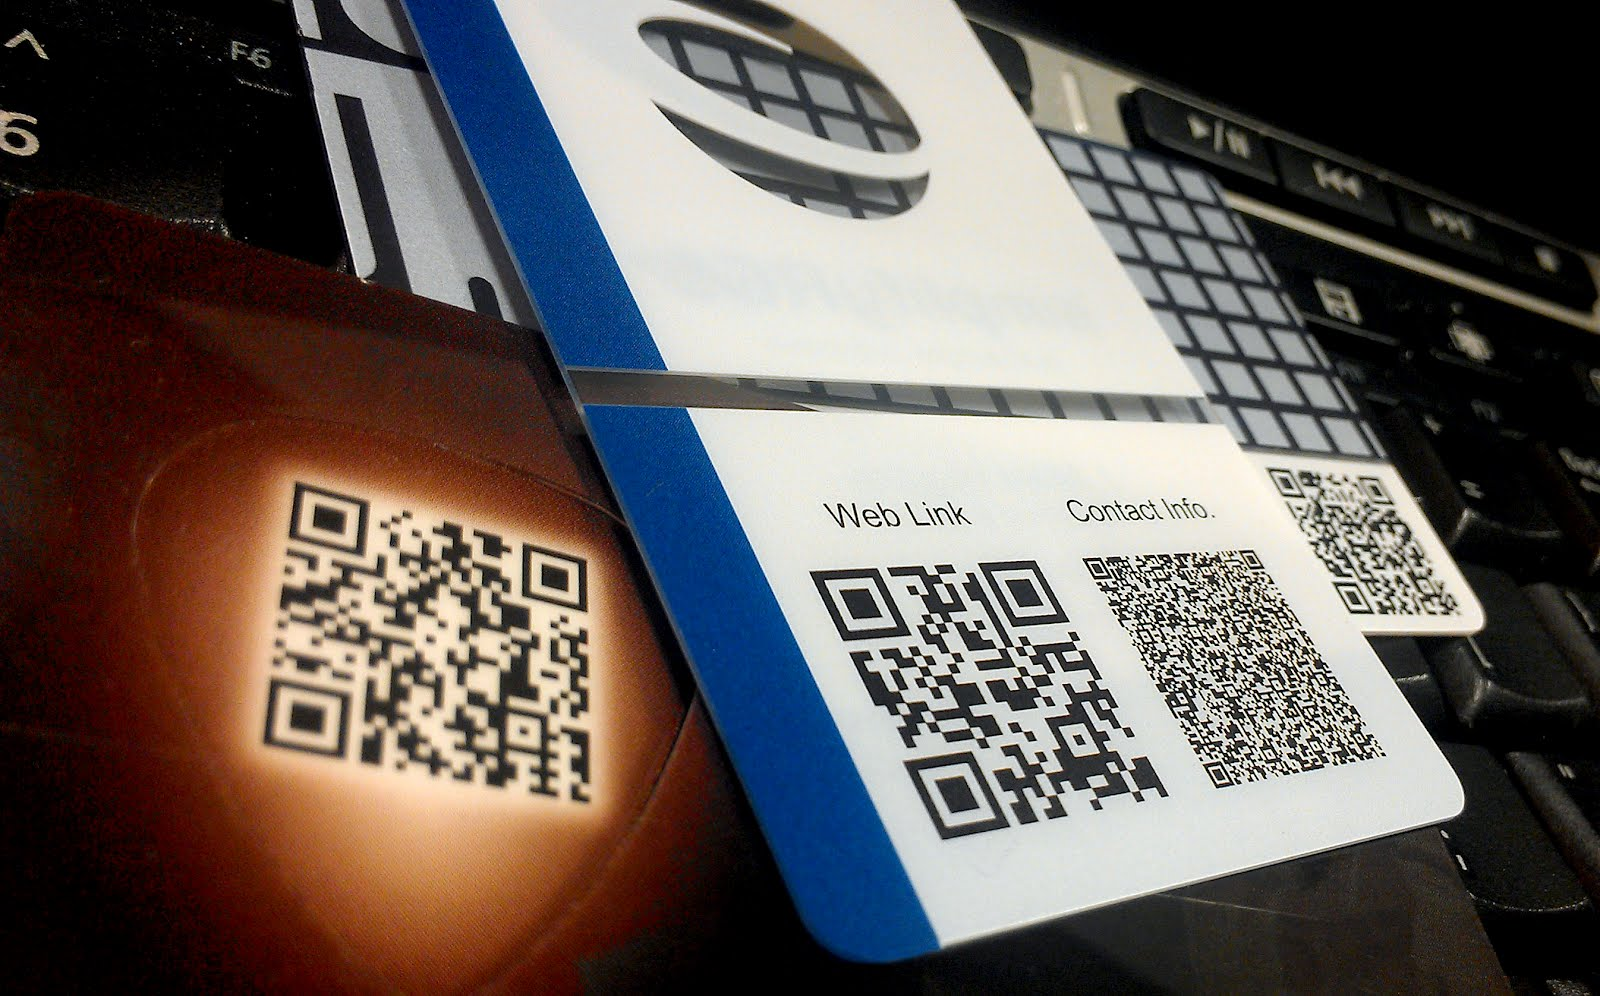 Plastic business card design tips creative tip 3 add a qr code to creative tip 3 add a qr code to your business card colourmoves